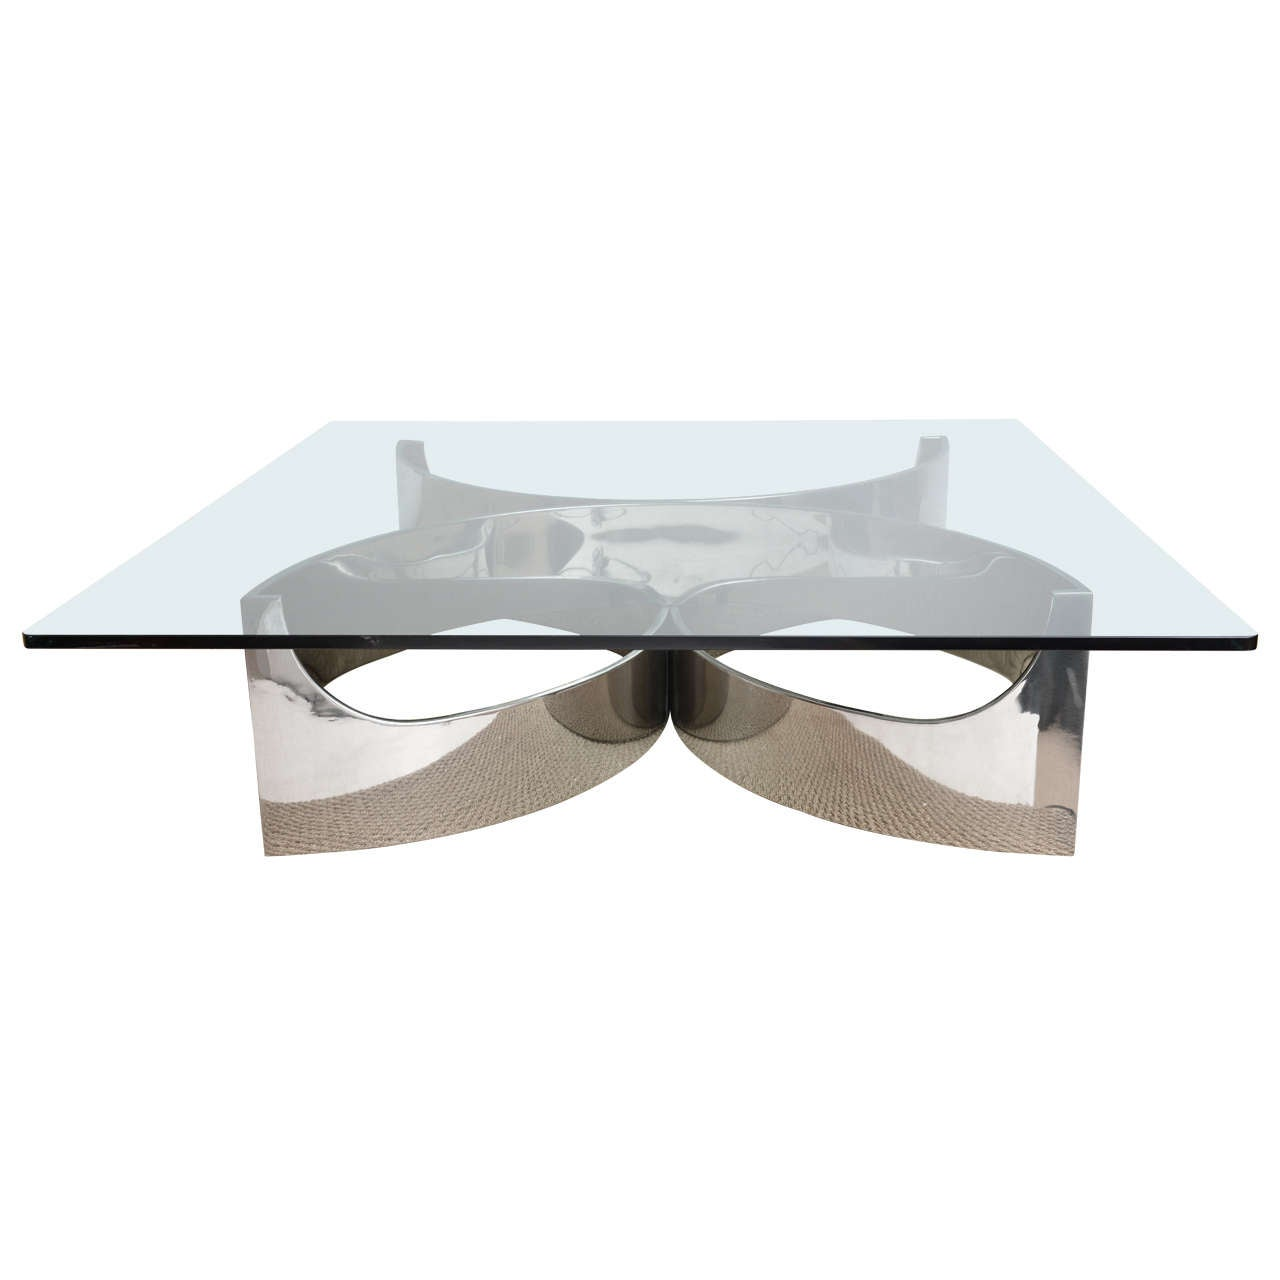 Square Steel Coffee Table Italian C 1970: Superb French Stainless Steel Coffee Table At 1stdibs